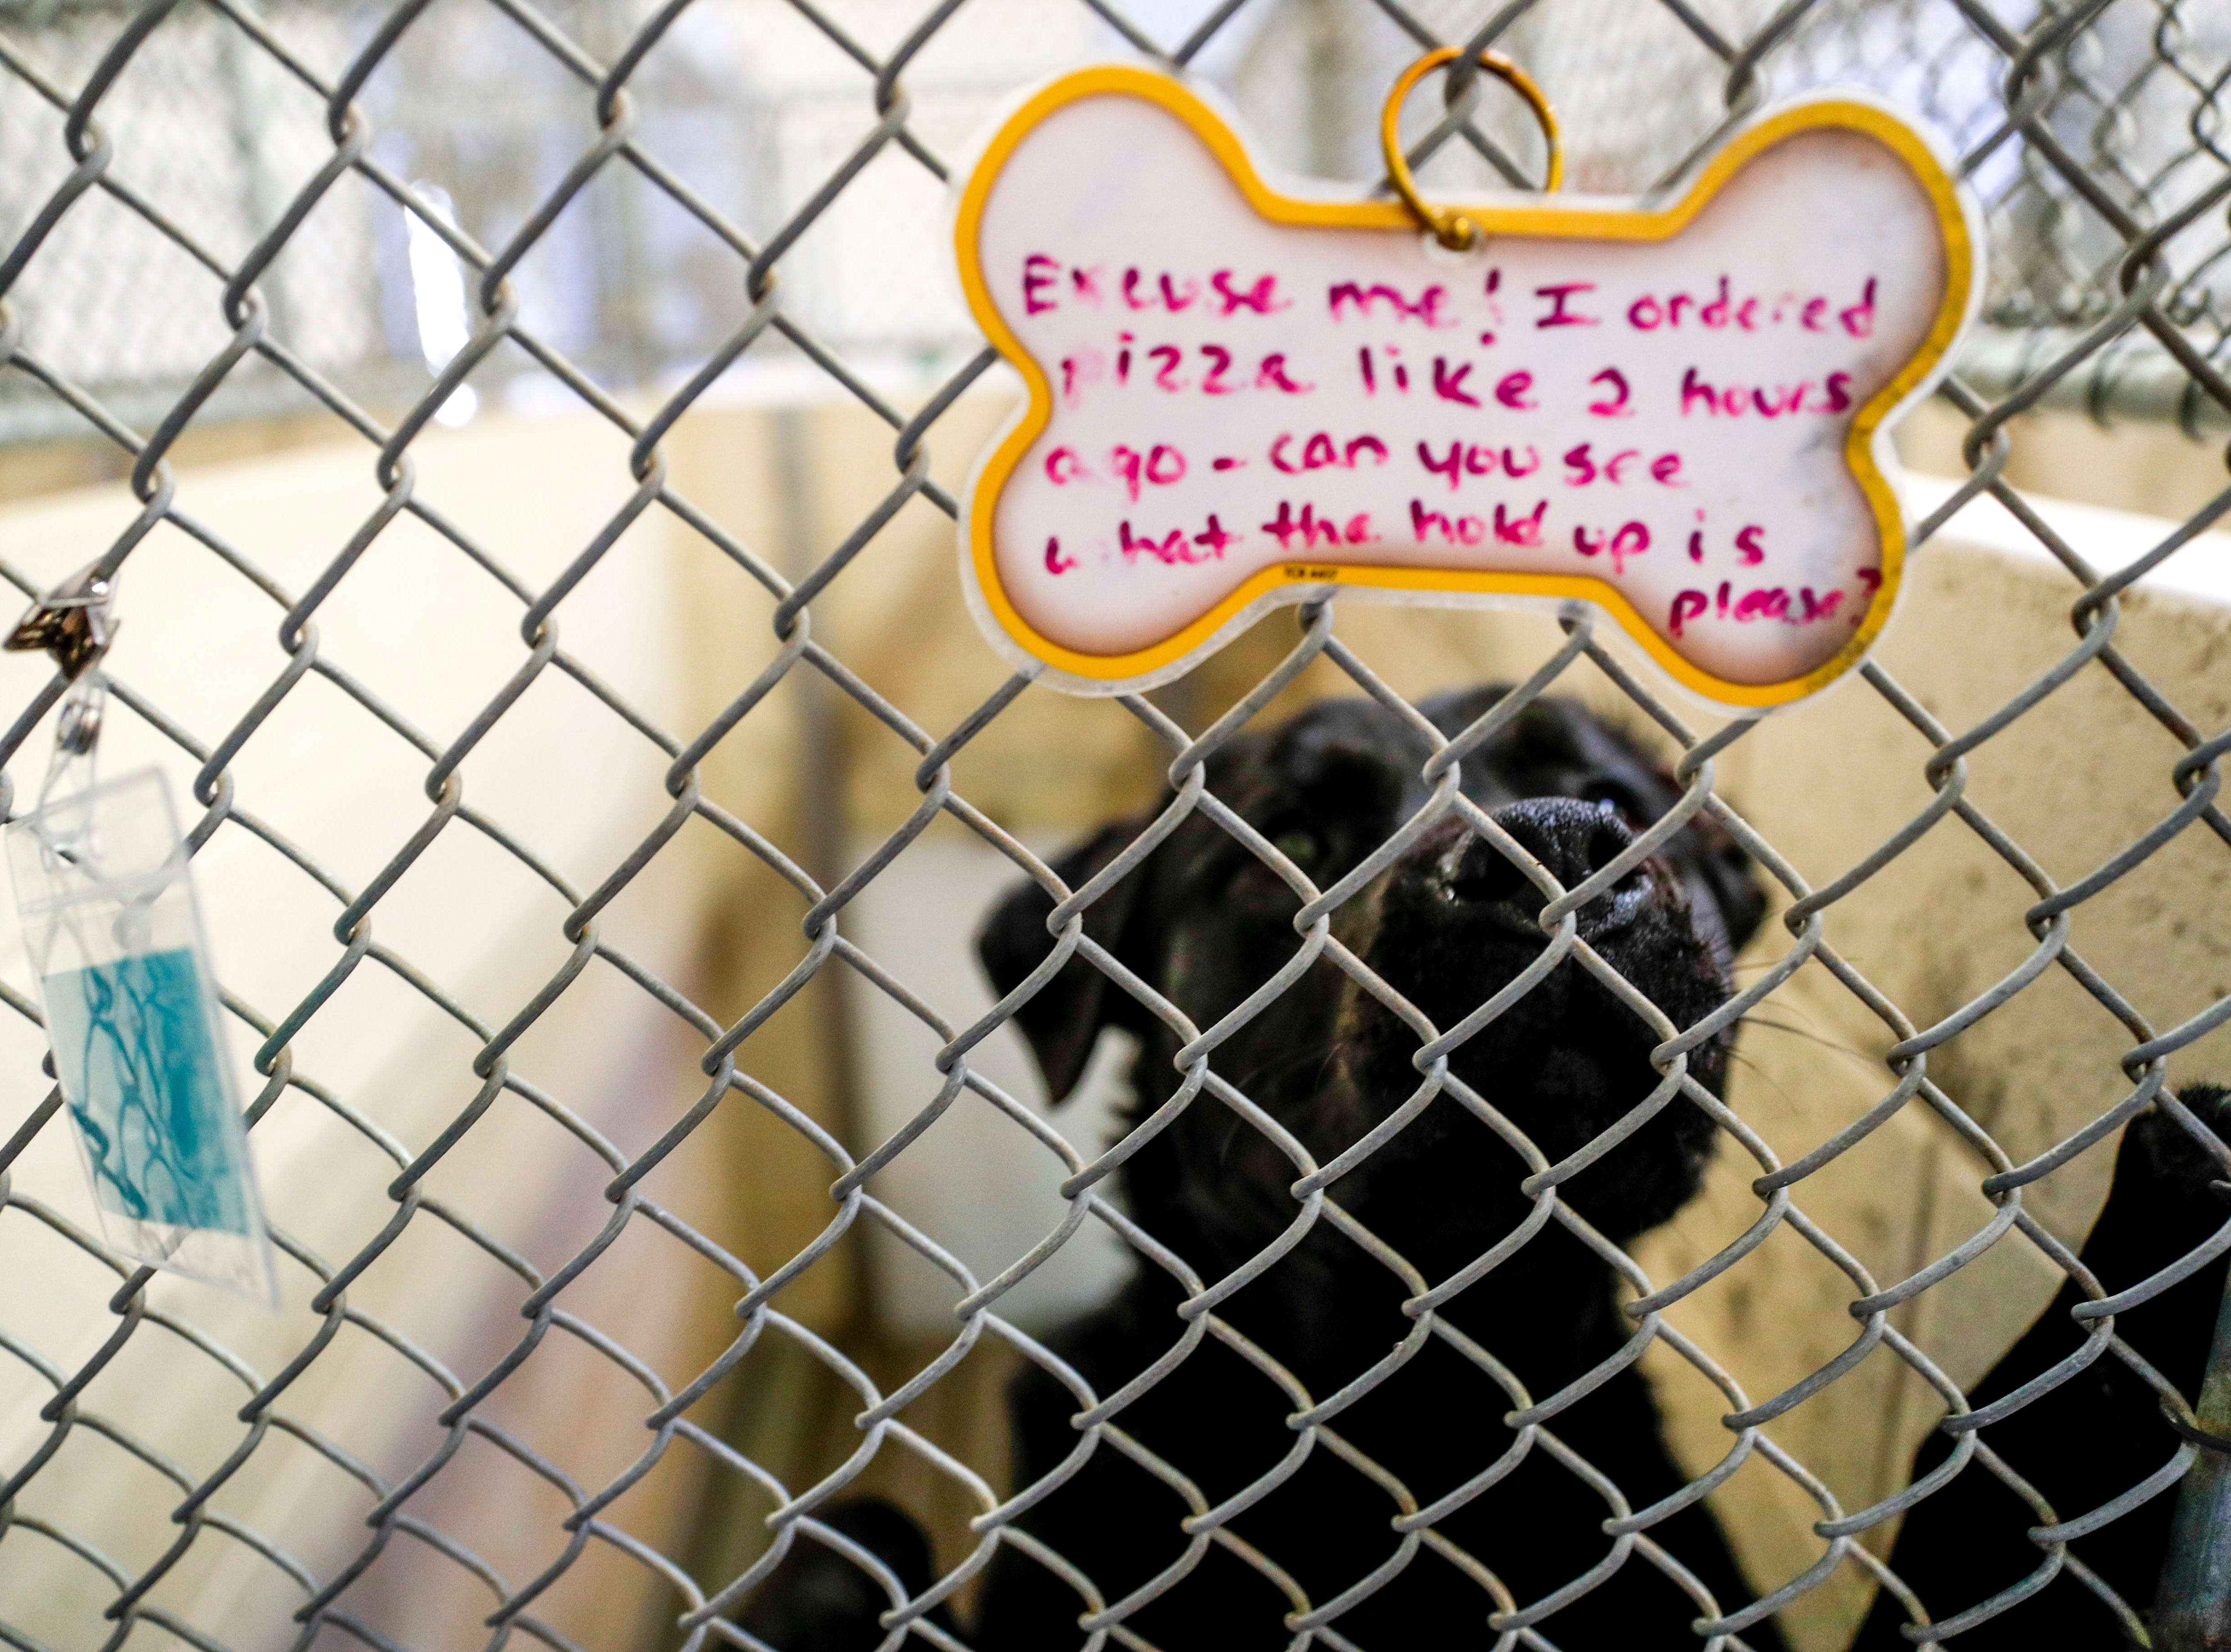 Morgan, a mixed Labrador retriever, jumps up for the camera while waiting for a new owner to take him home at Montgomery County Animal Care and Control in Clarksville, Tenn., on Wednesday, March 13, 2019.